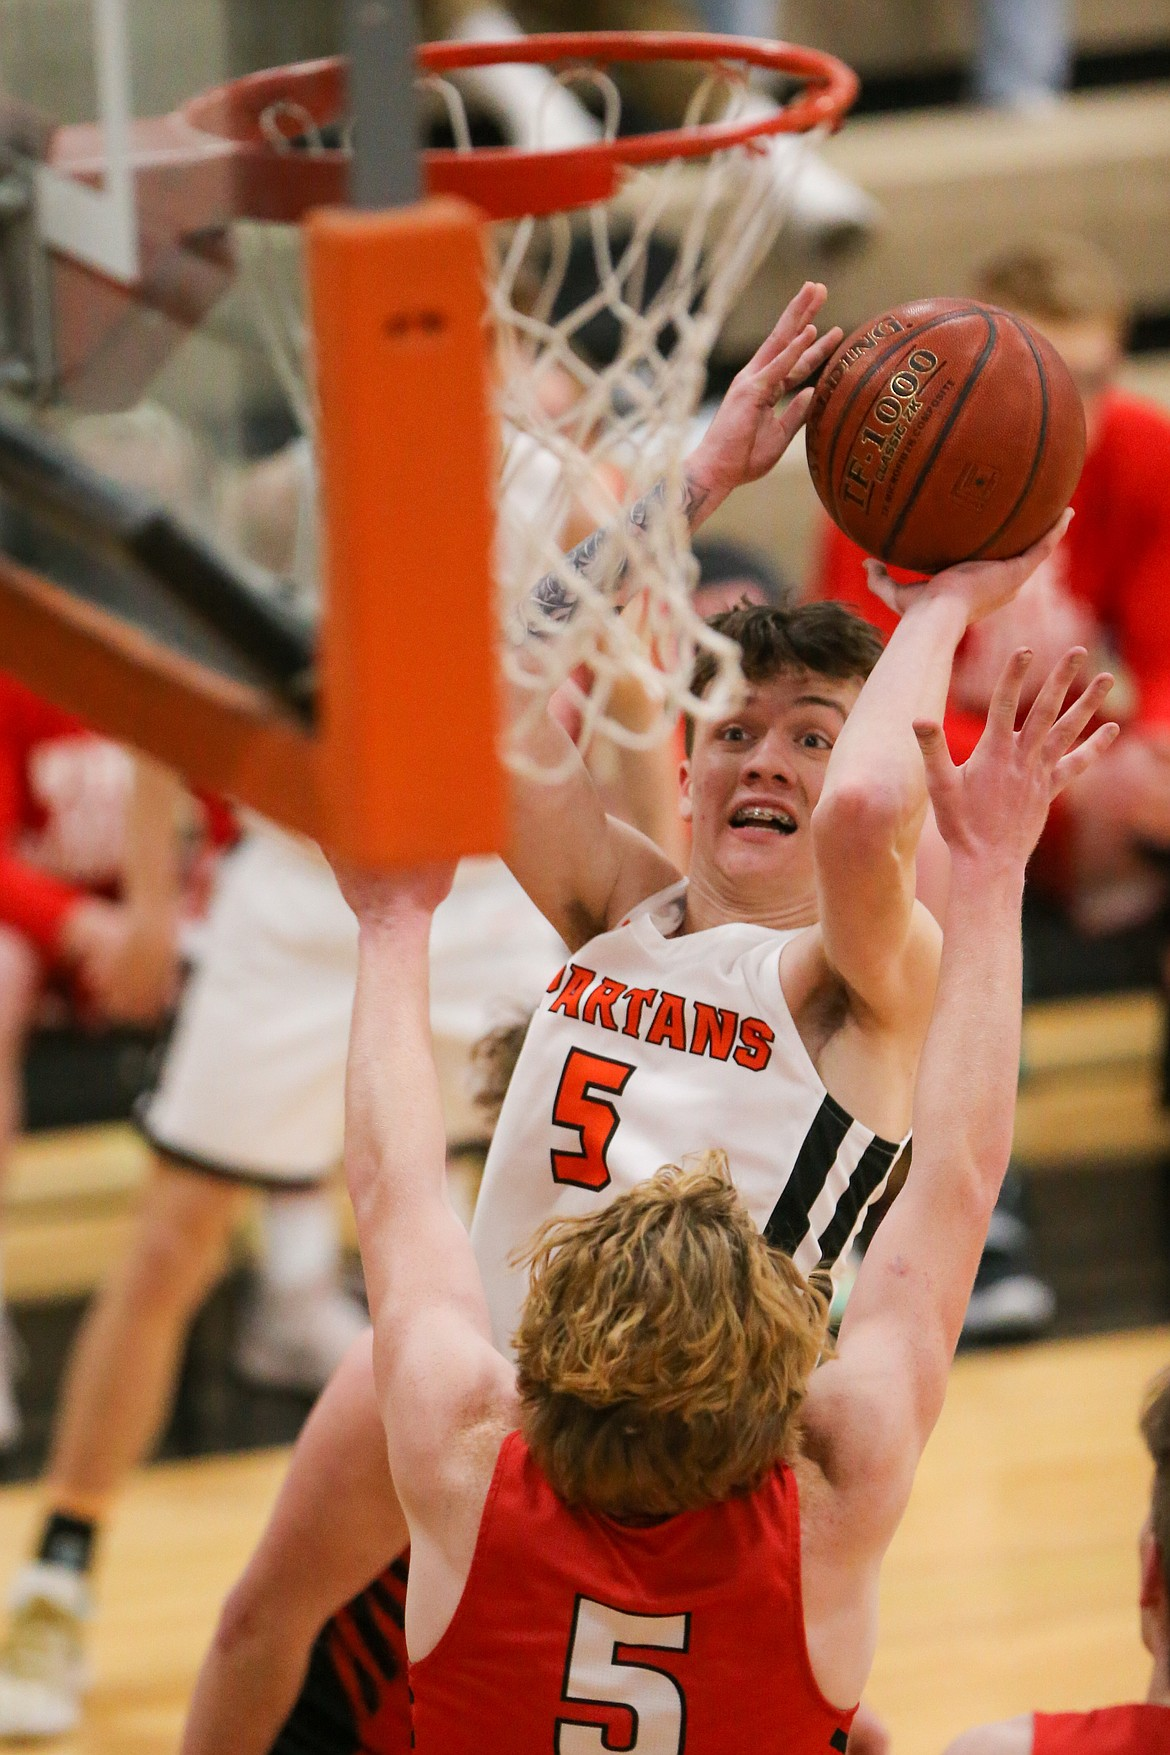 Priest River junior Trentyn Kreager attempts to knock down a shot over a Sandpoint defender during a home game this winter. Kreager was named a finalist for the 3A-1A boys basketball award.